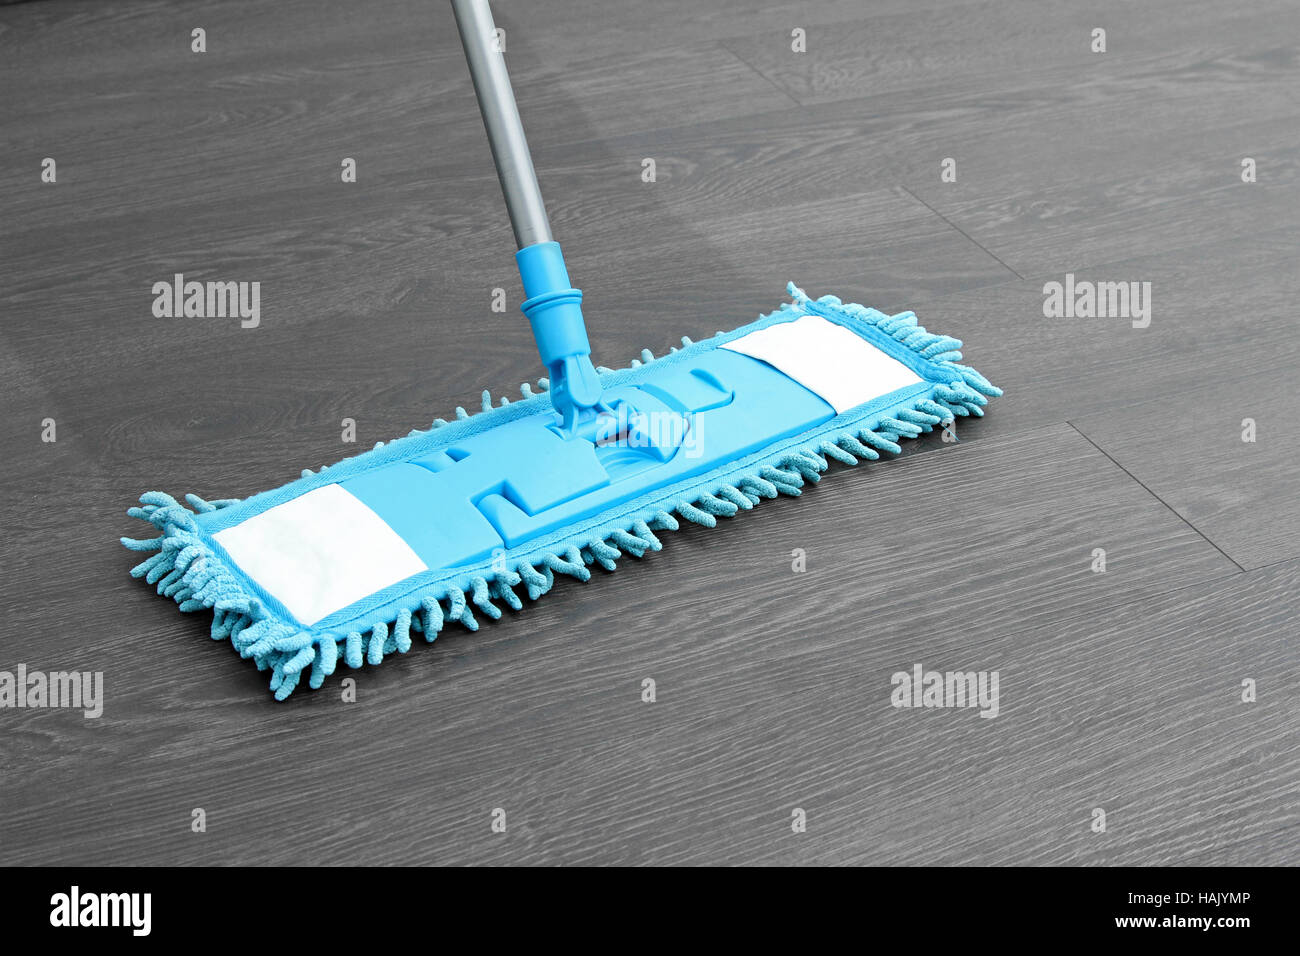 house cleaning - mop washing wooden floor - Stock Image